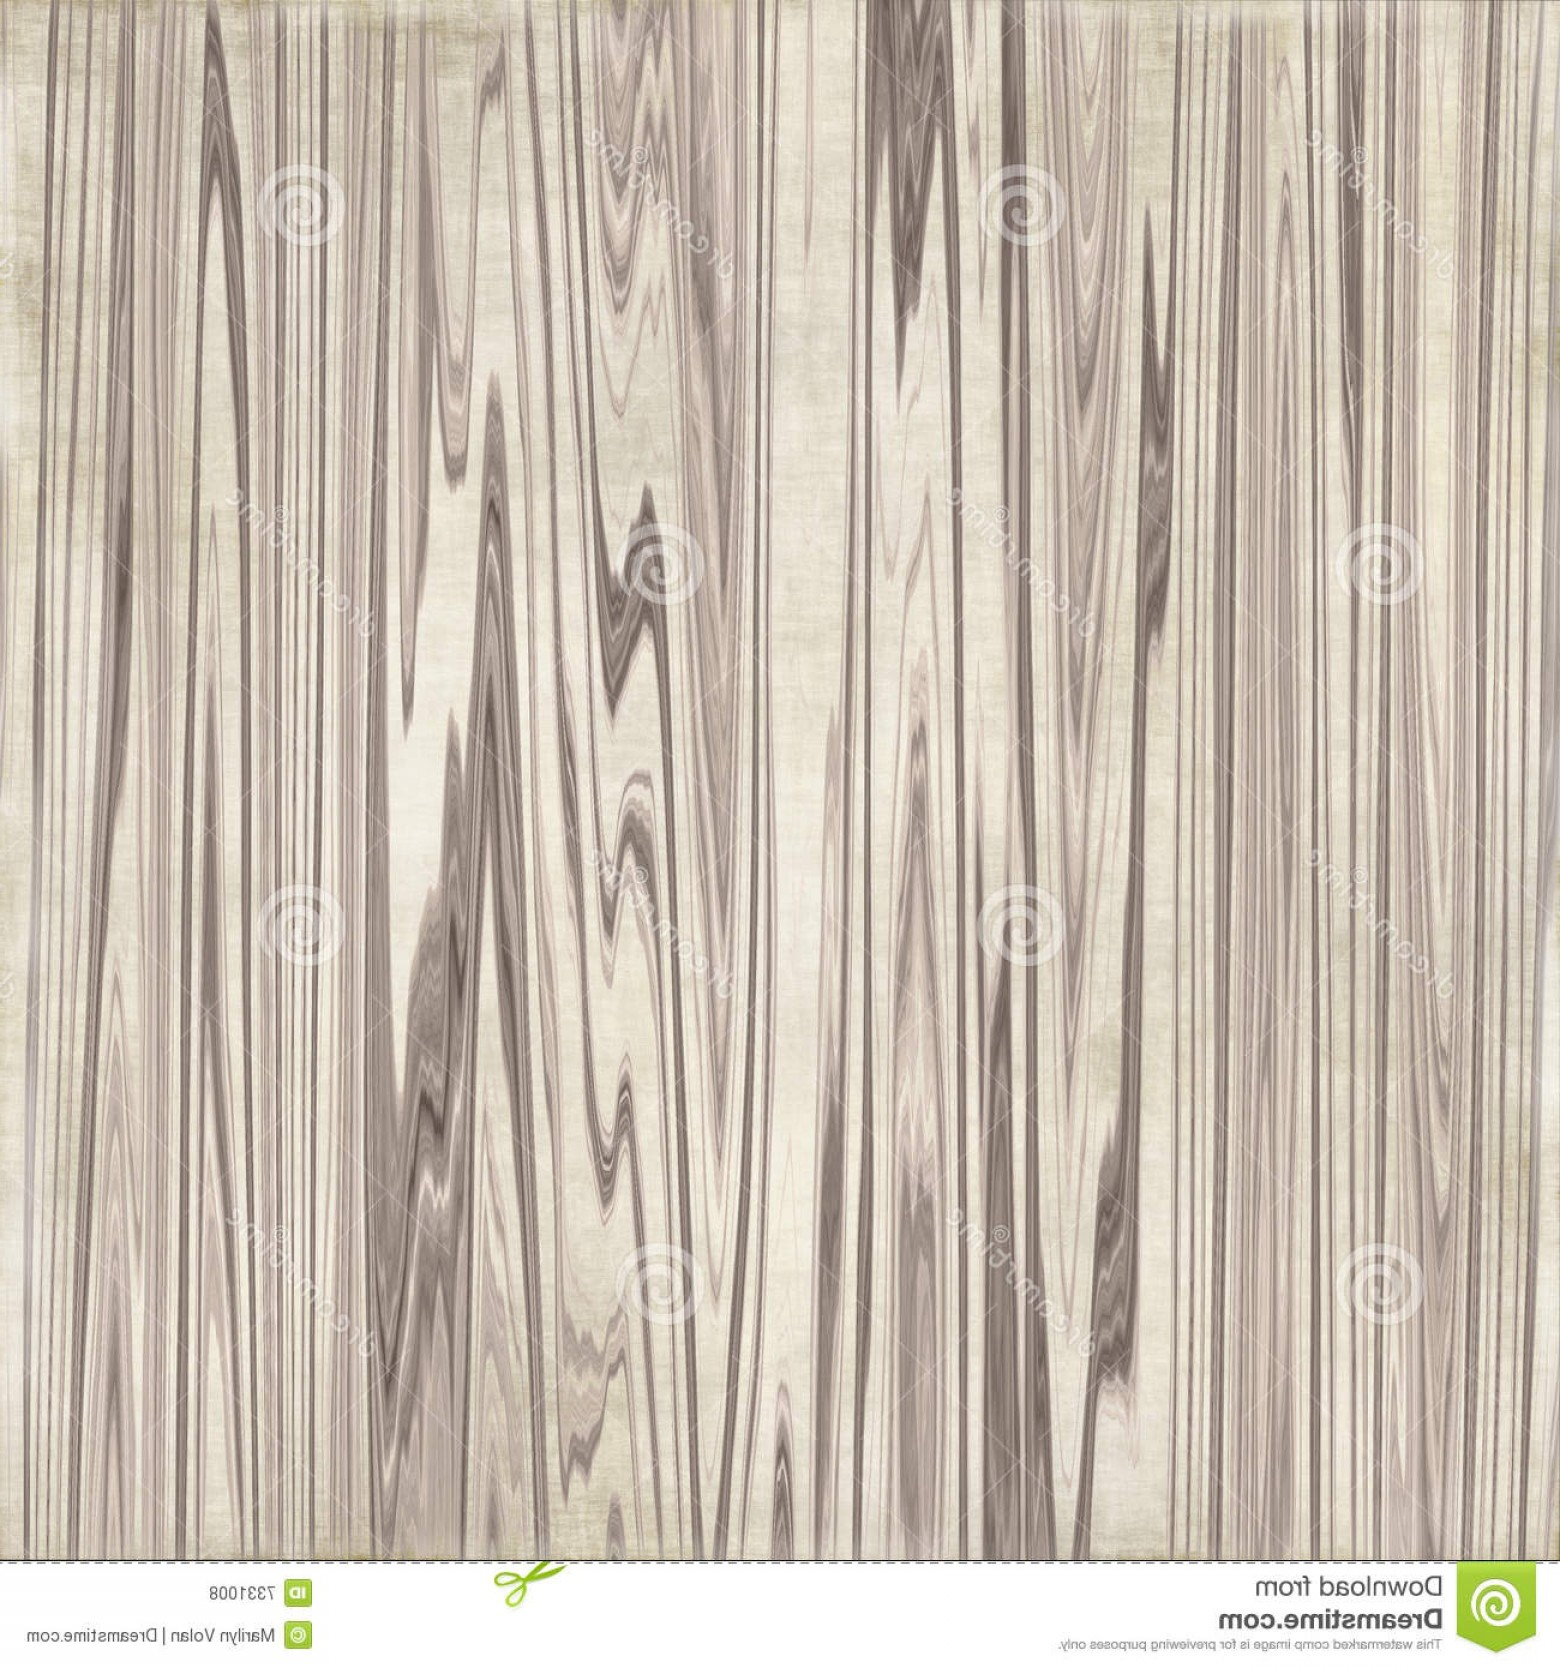 1560x1668 Stock Photo Wood Pattern Vector Horizontal Beige Also Comes Image